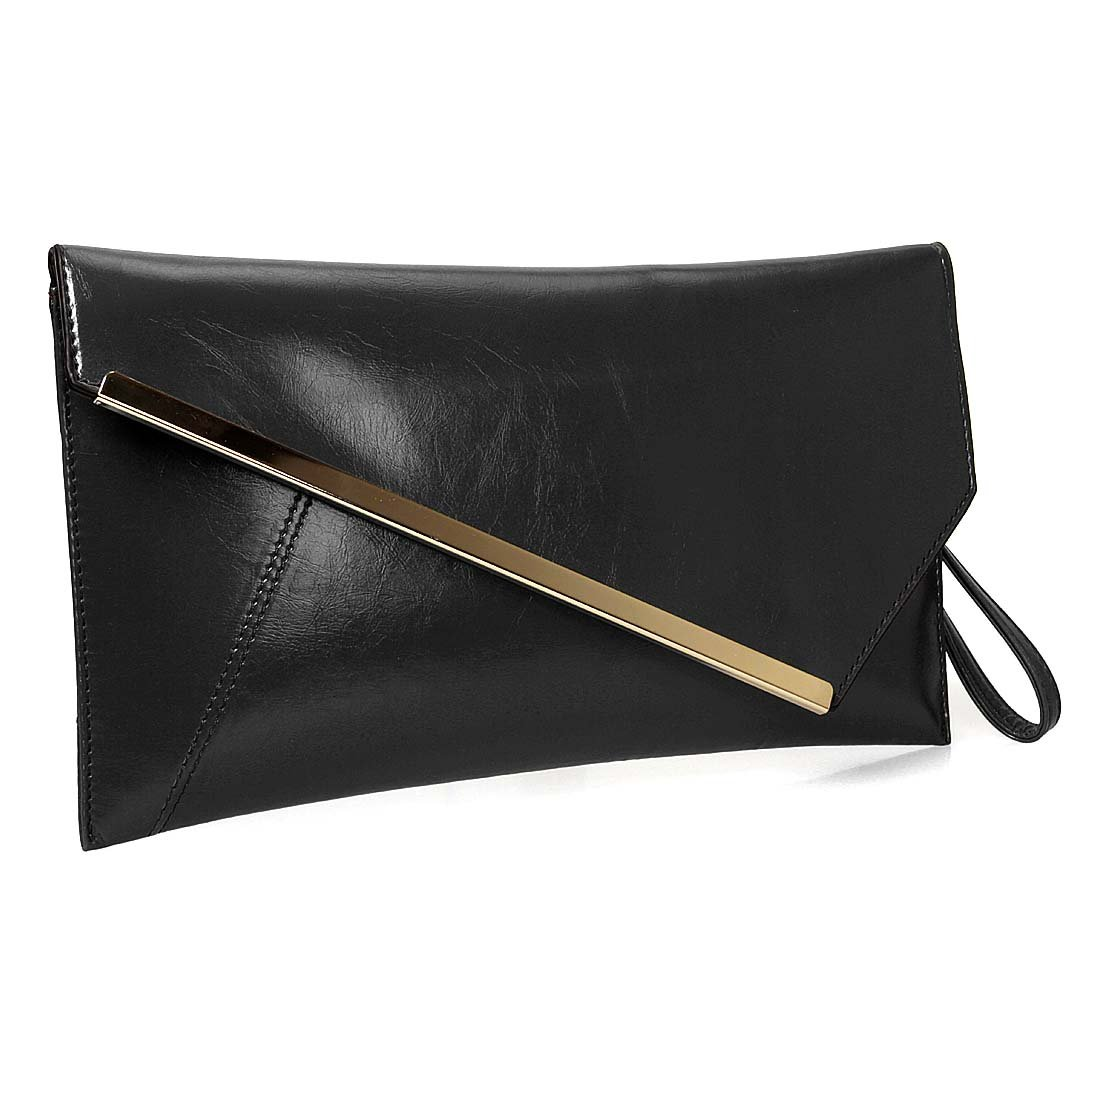 BMC Fashionably Chic Noir Black Faux Leather Gold Metal Accent Envelope Style Statement Clutch by b.m.c